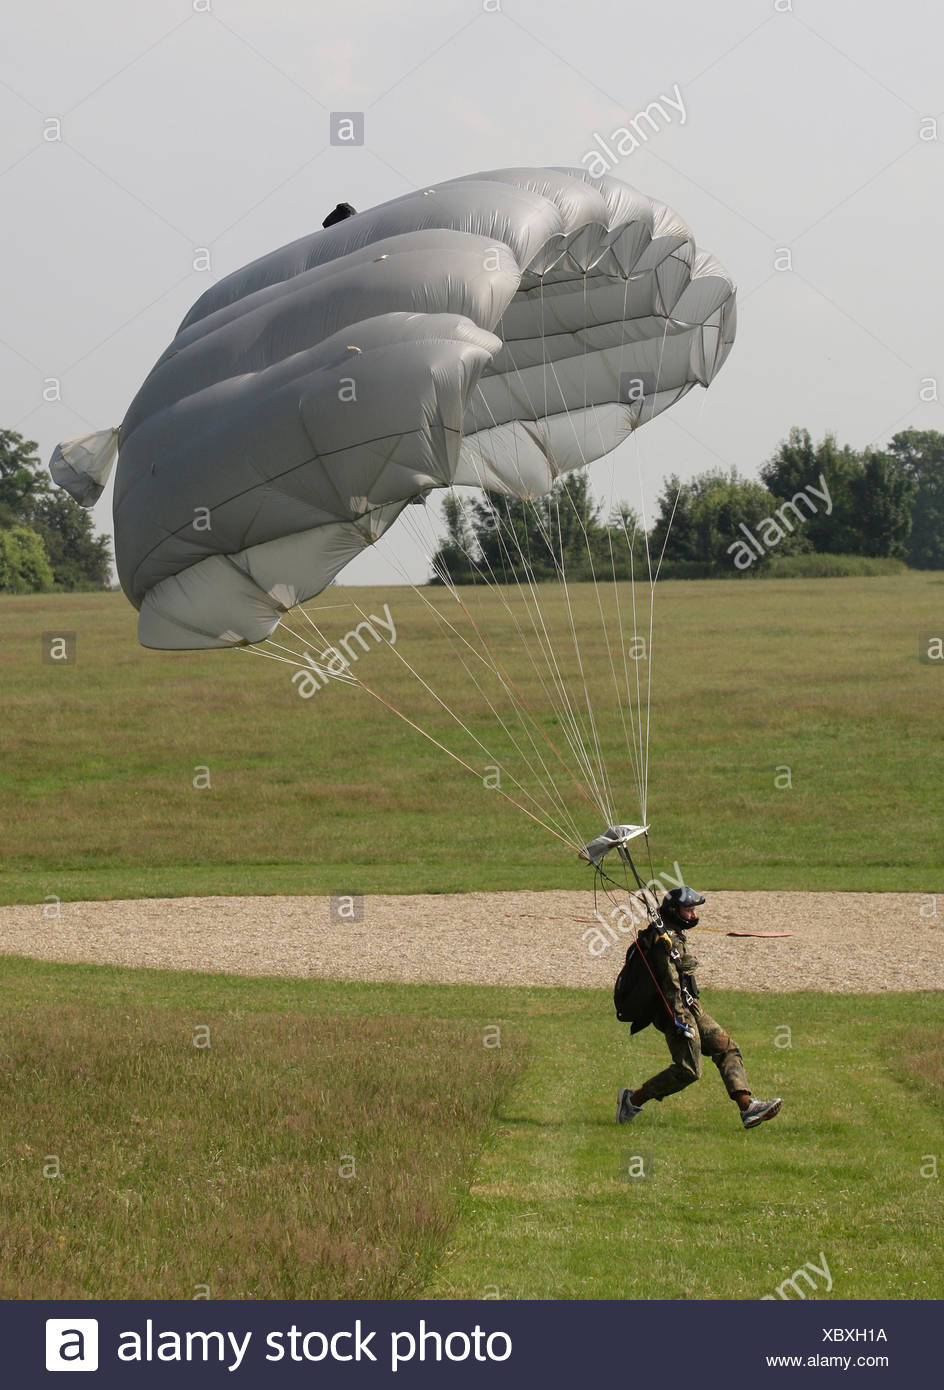 Paratrooper landing with a paraglider beside the target, 13th International Paratrooper Competition of the Special Operations Stock Photo